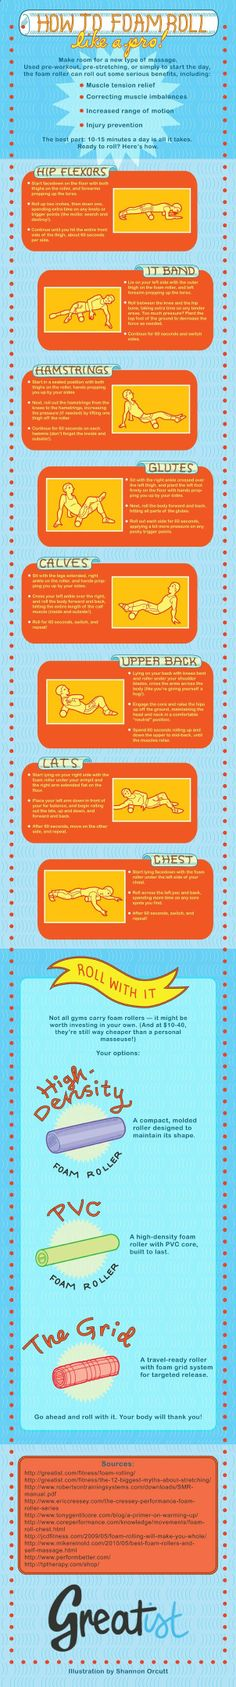 How to Foam-Roll like a pro! I love to foam roll... it is prettymuch my favorite post-workout ritual. Its like having my own personal masseuse! Foam rolling massages your muscles and helps you recover better after a workout:) My favorite thing to foam roll: my IT bands... it hurts SO MUCH the first few days you do it, but man do your muscles start feeling more loose afterwards!!